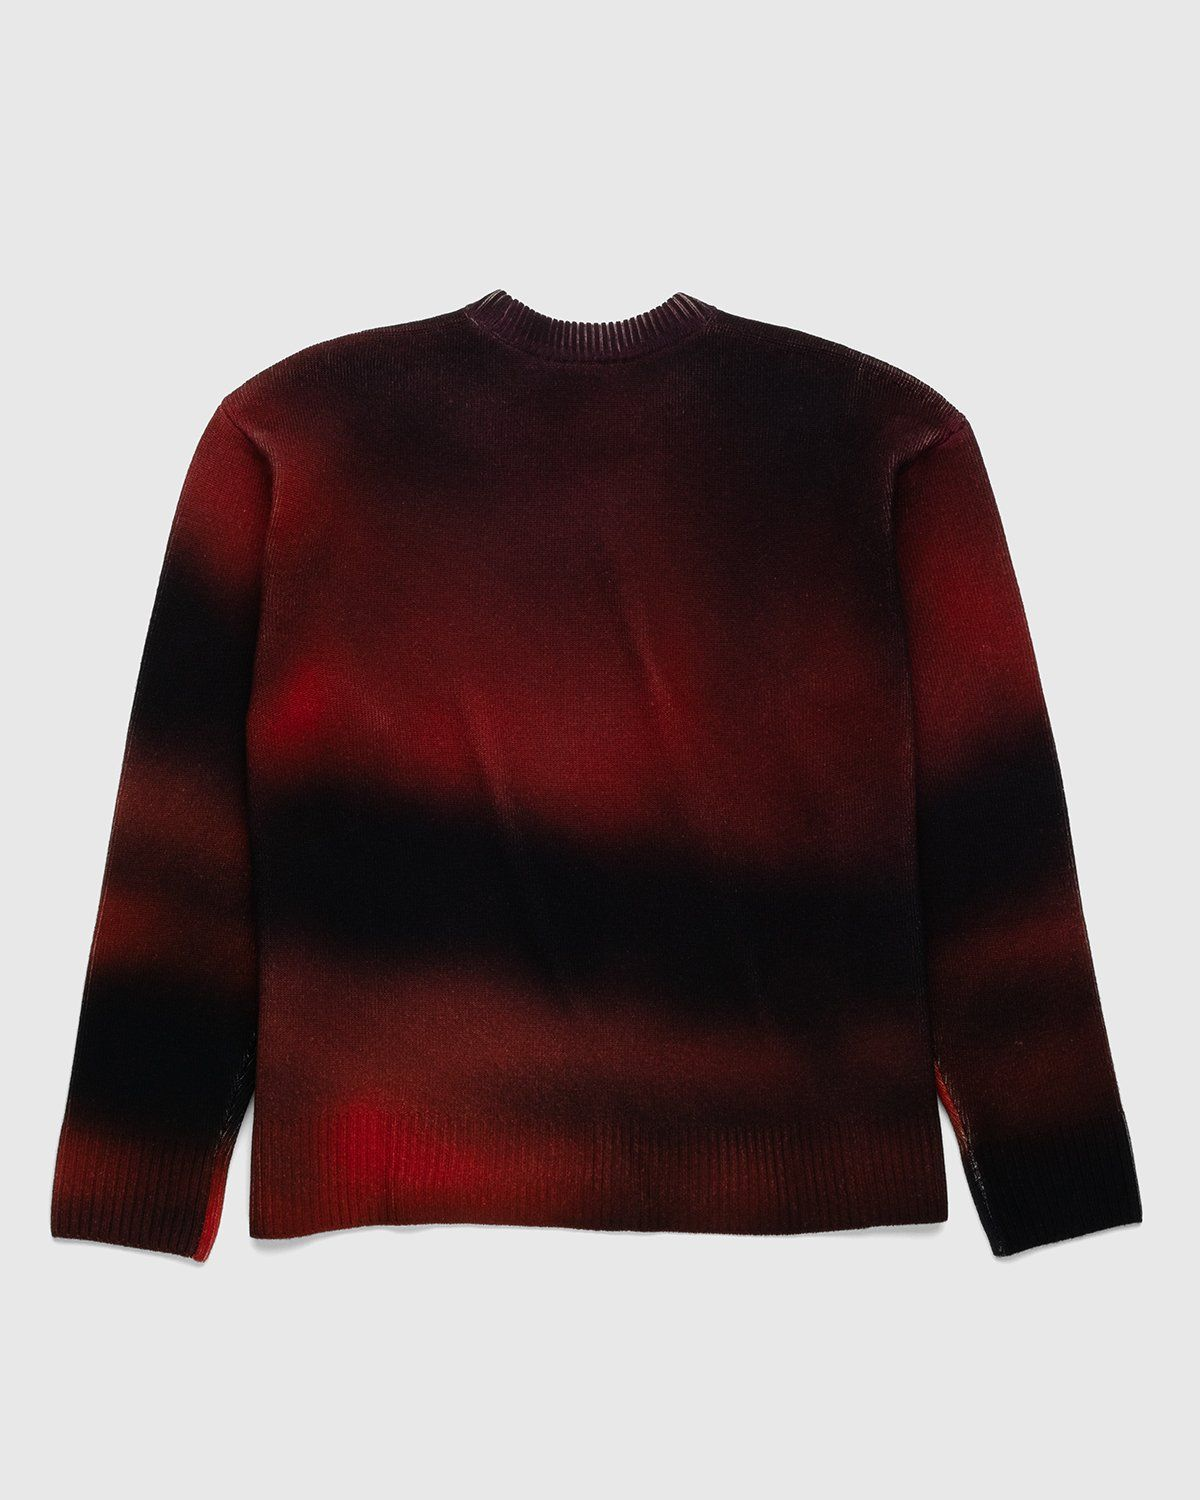 A-COLD-WALL* – Digital Print Knit Red - Image 2